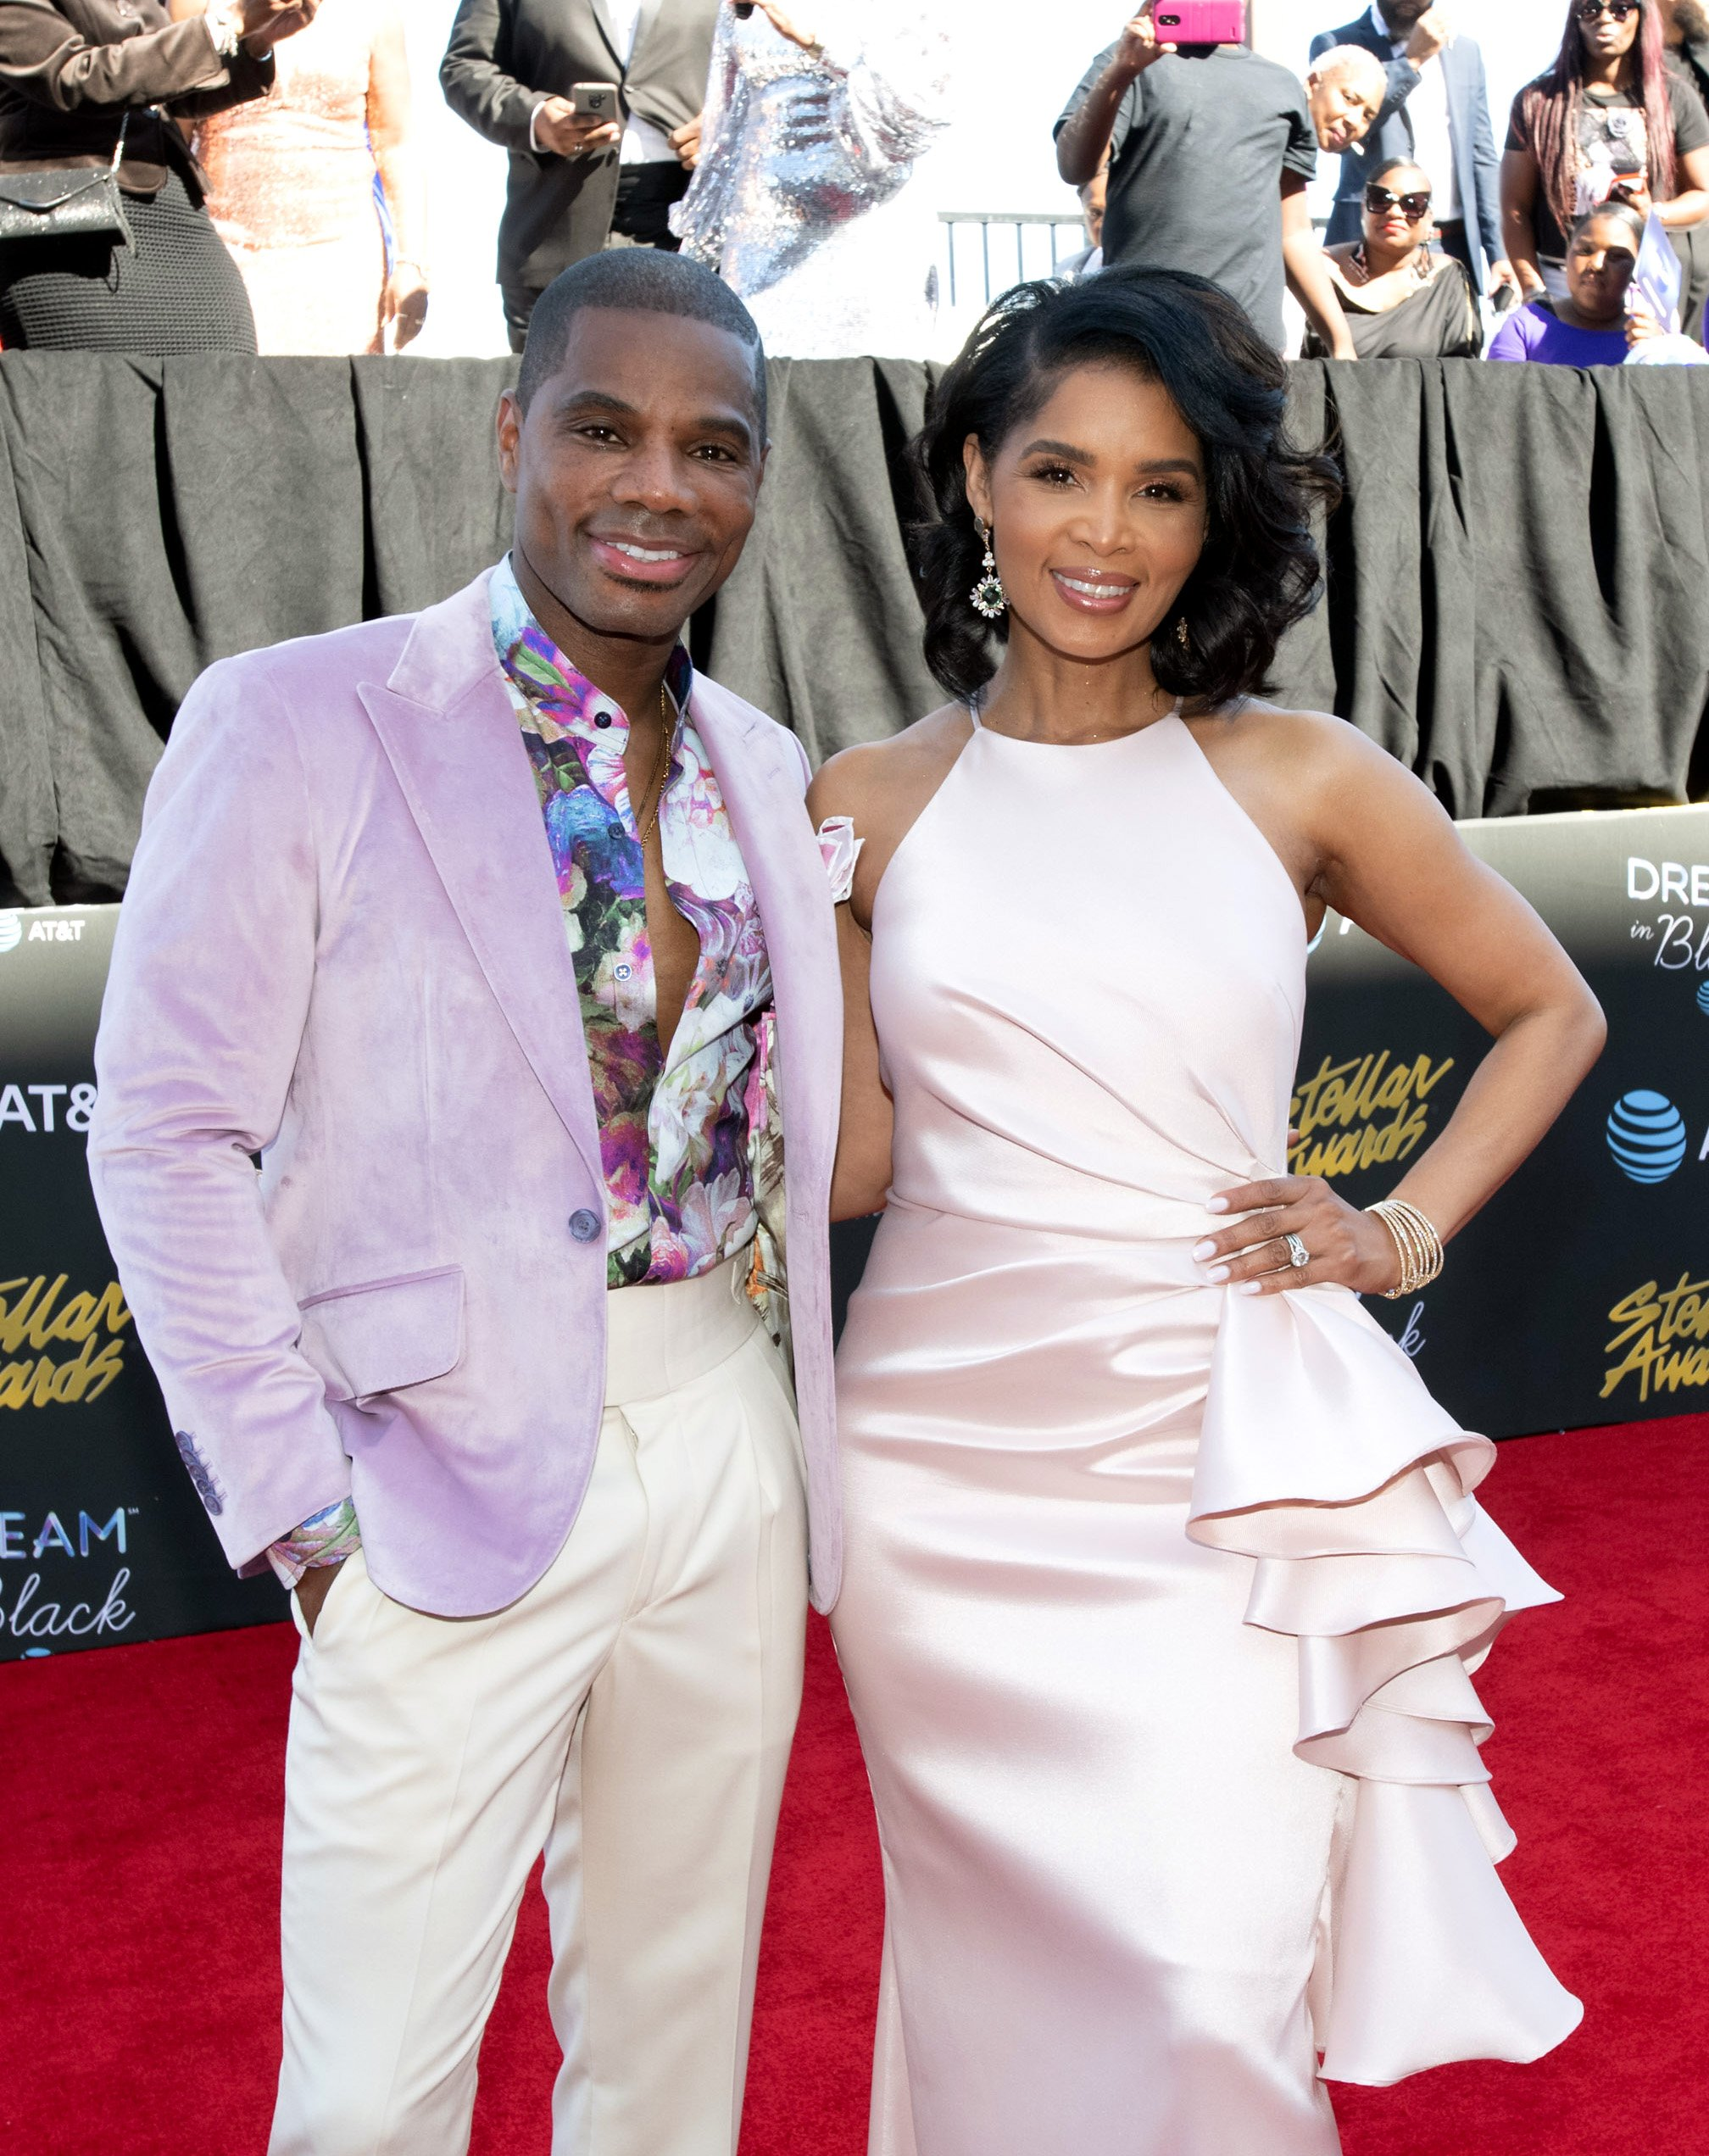 Kirk and his wife Tammy Franklin appearing at the 34th annual Stellar Gospel Music Awards in Las Vegas on March 29, 2019. | Photo: Getty Images